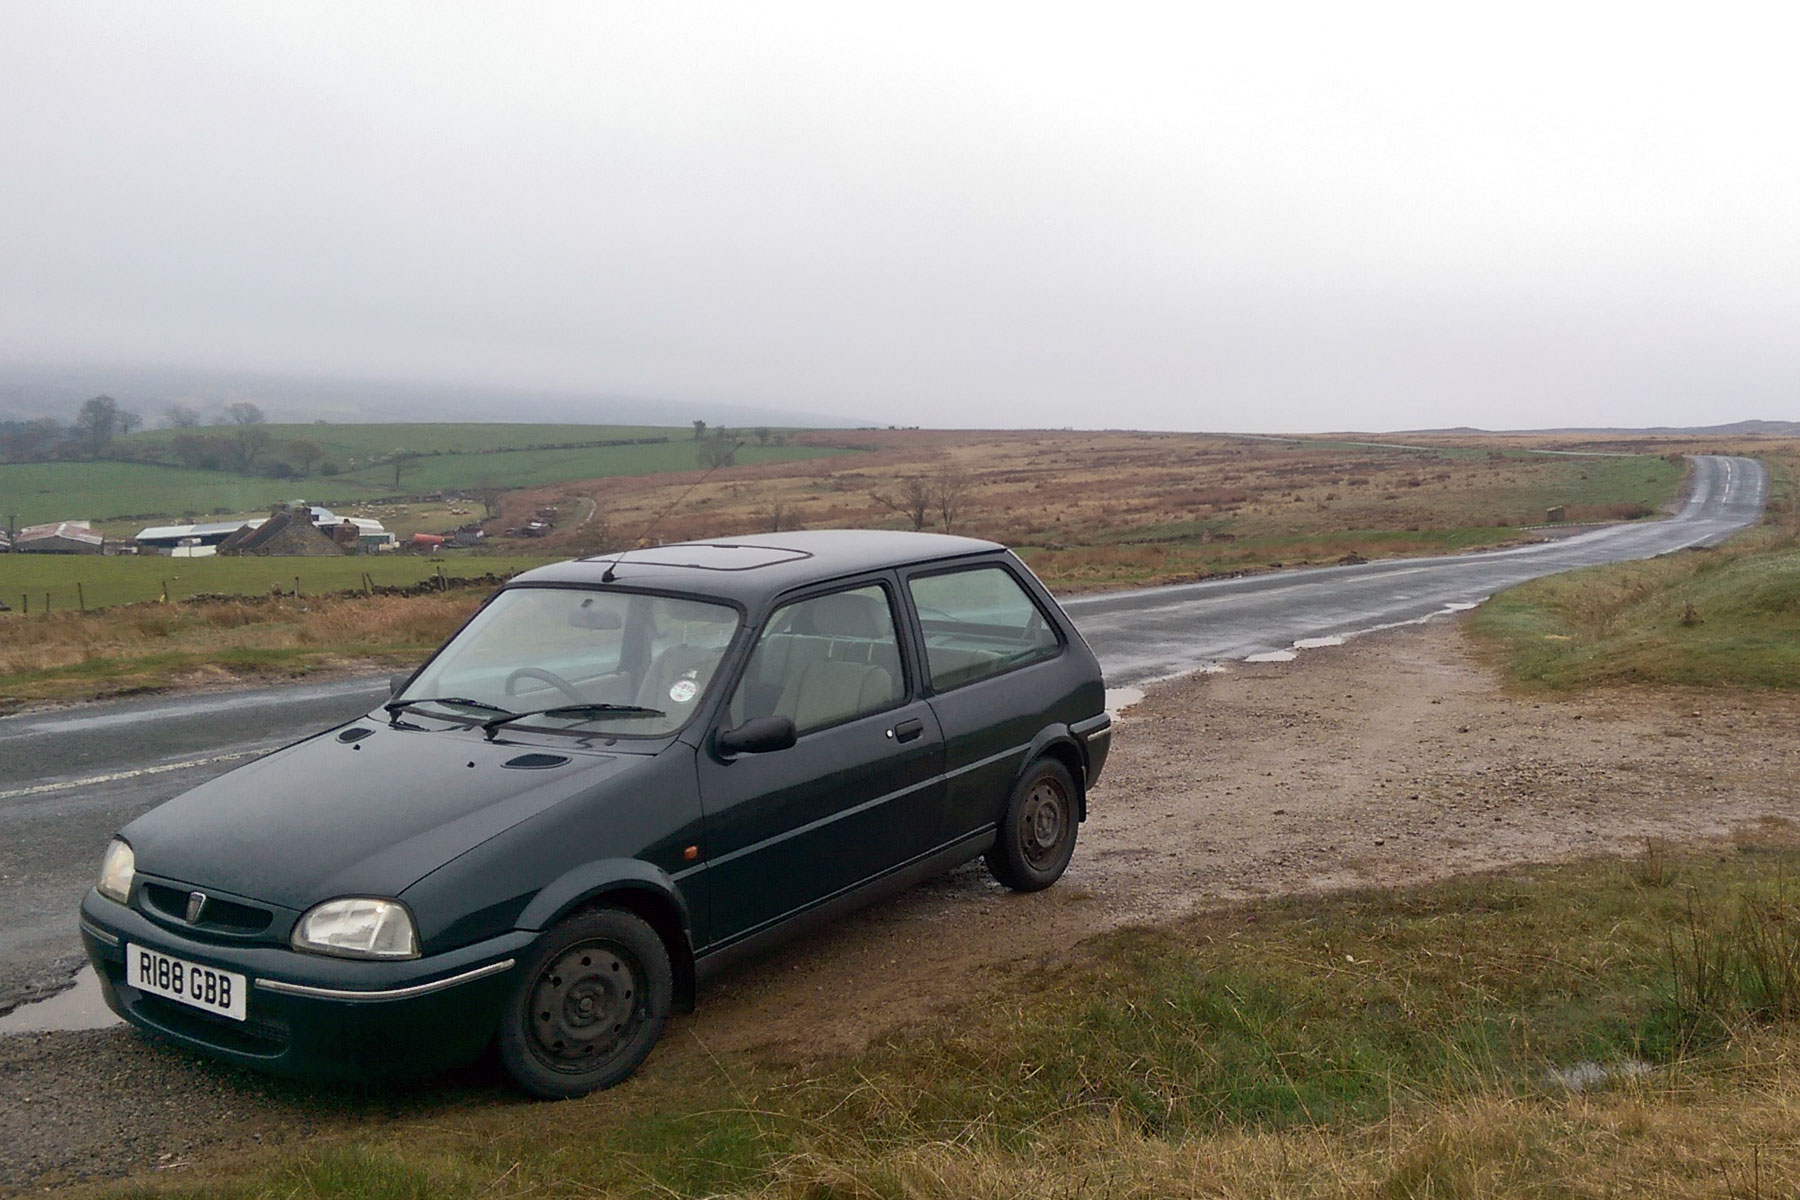 Bored of cars? Drive a Rover 100